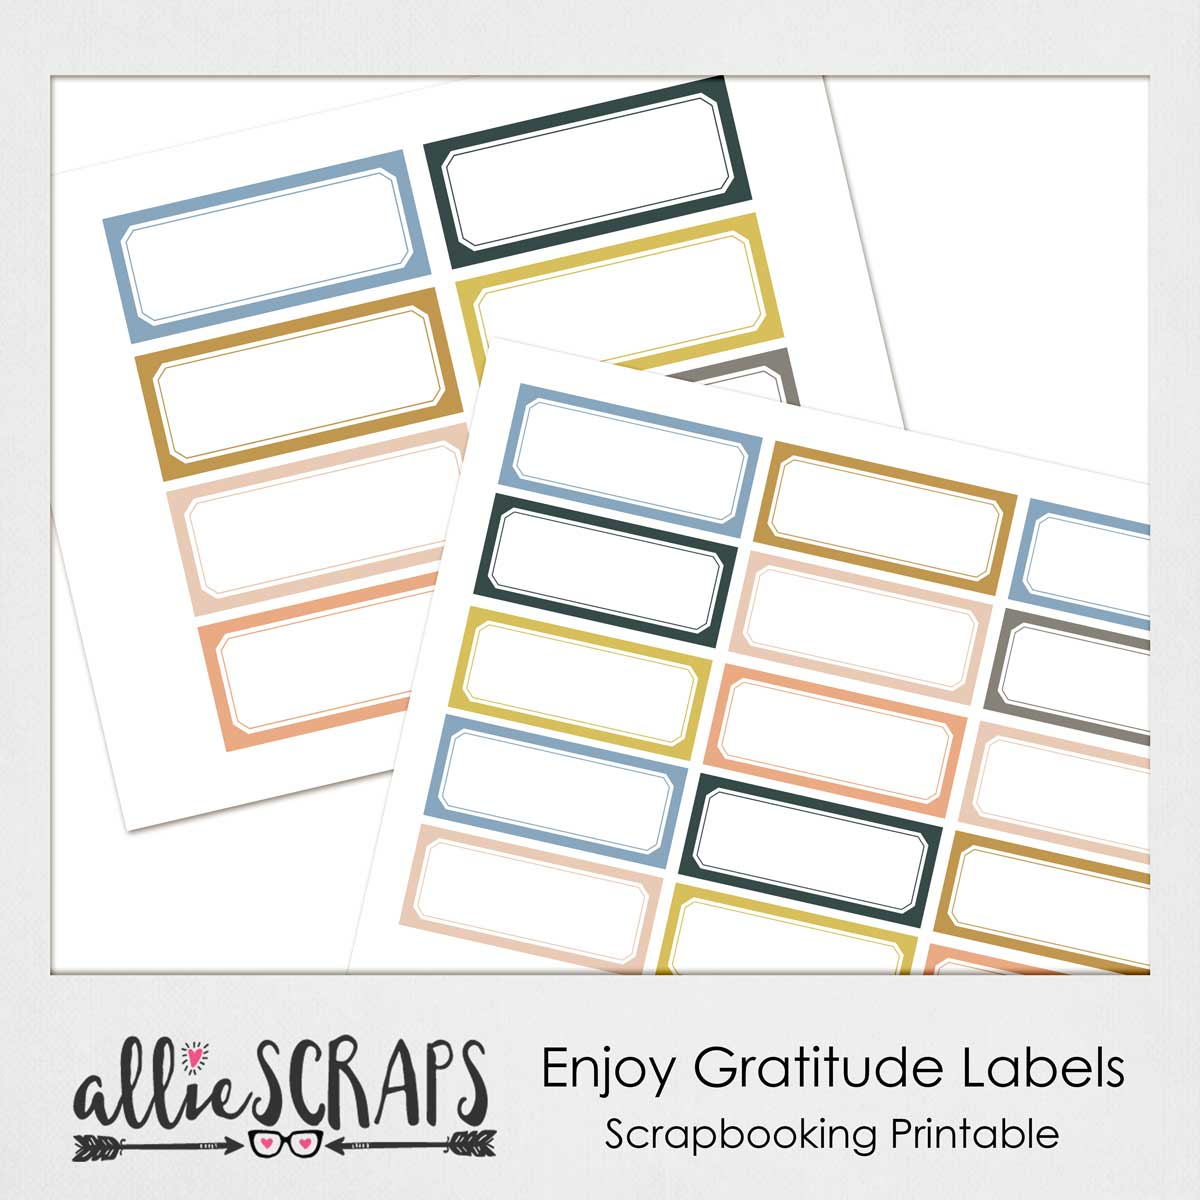 AS-EnjoyGratitude-label-Preview.jpg